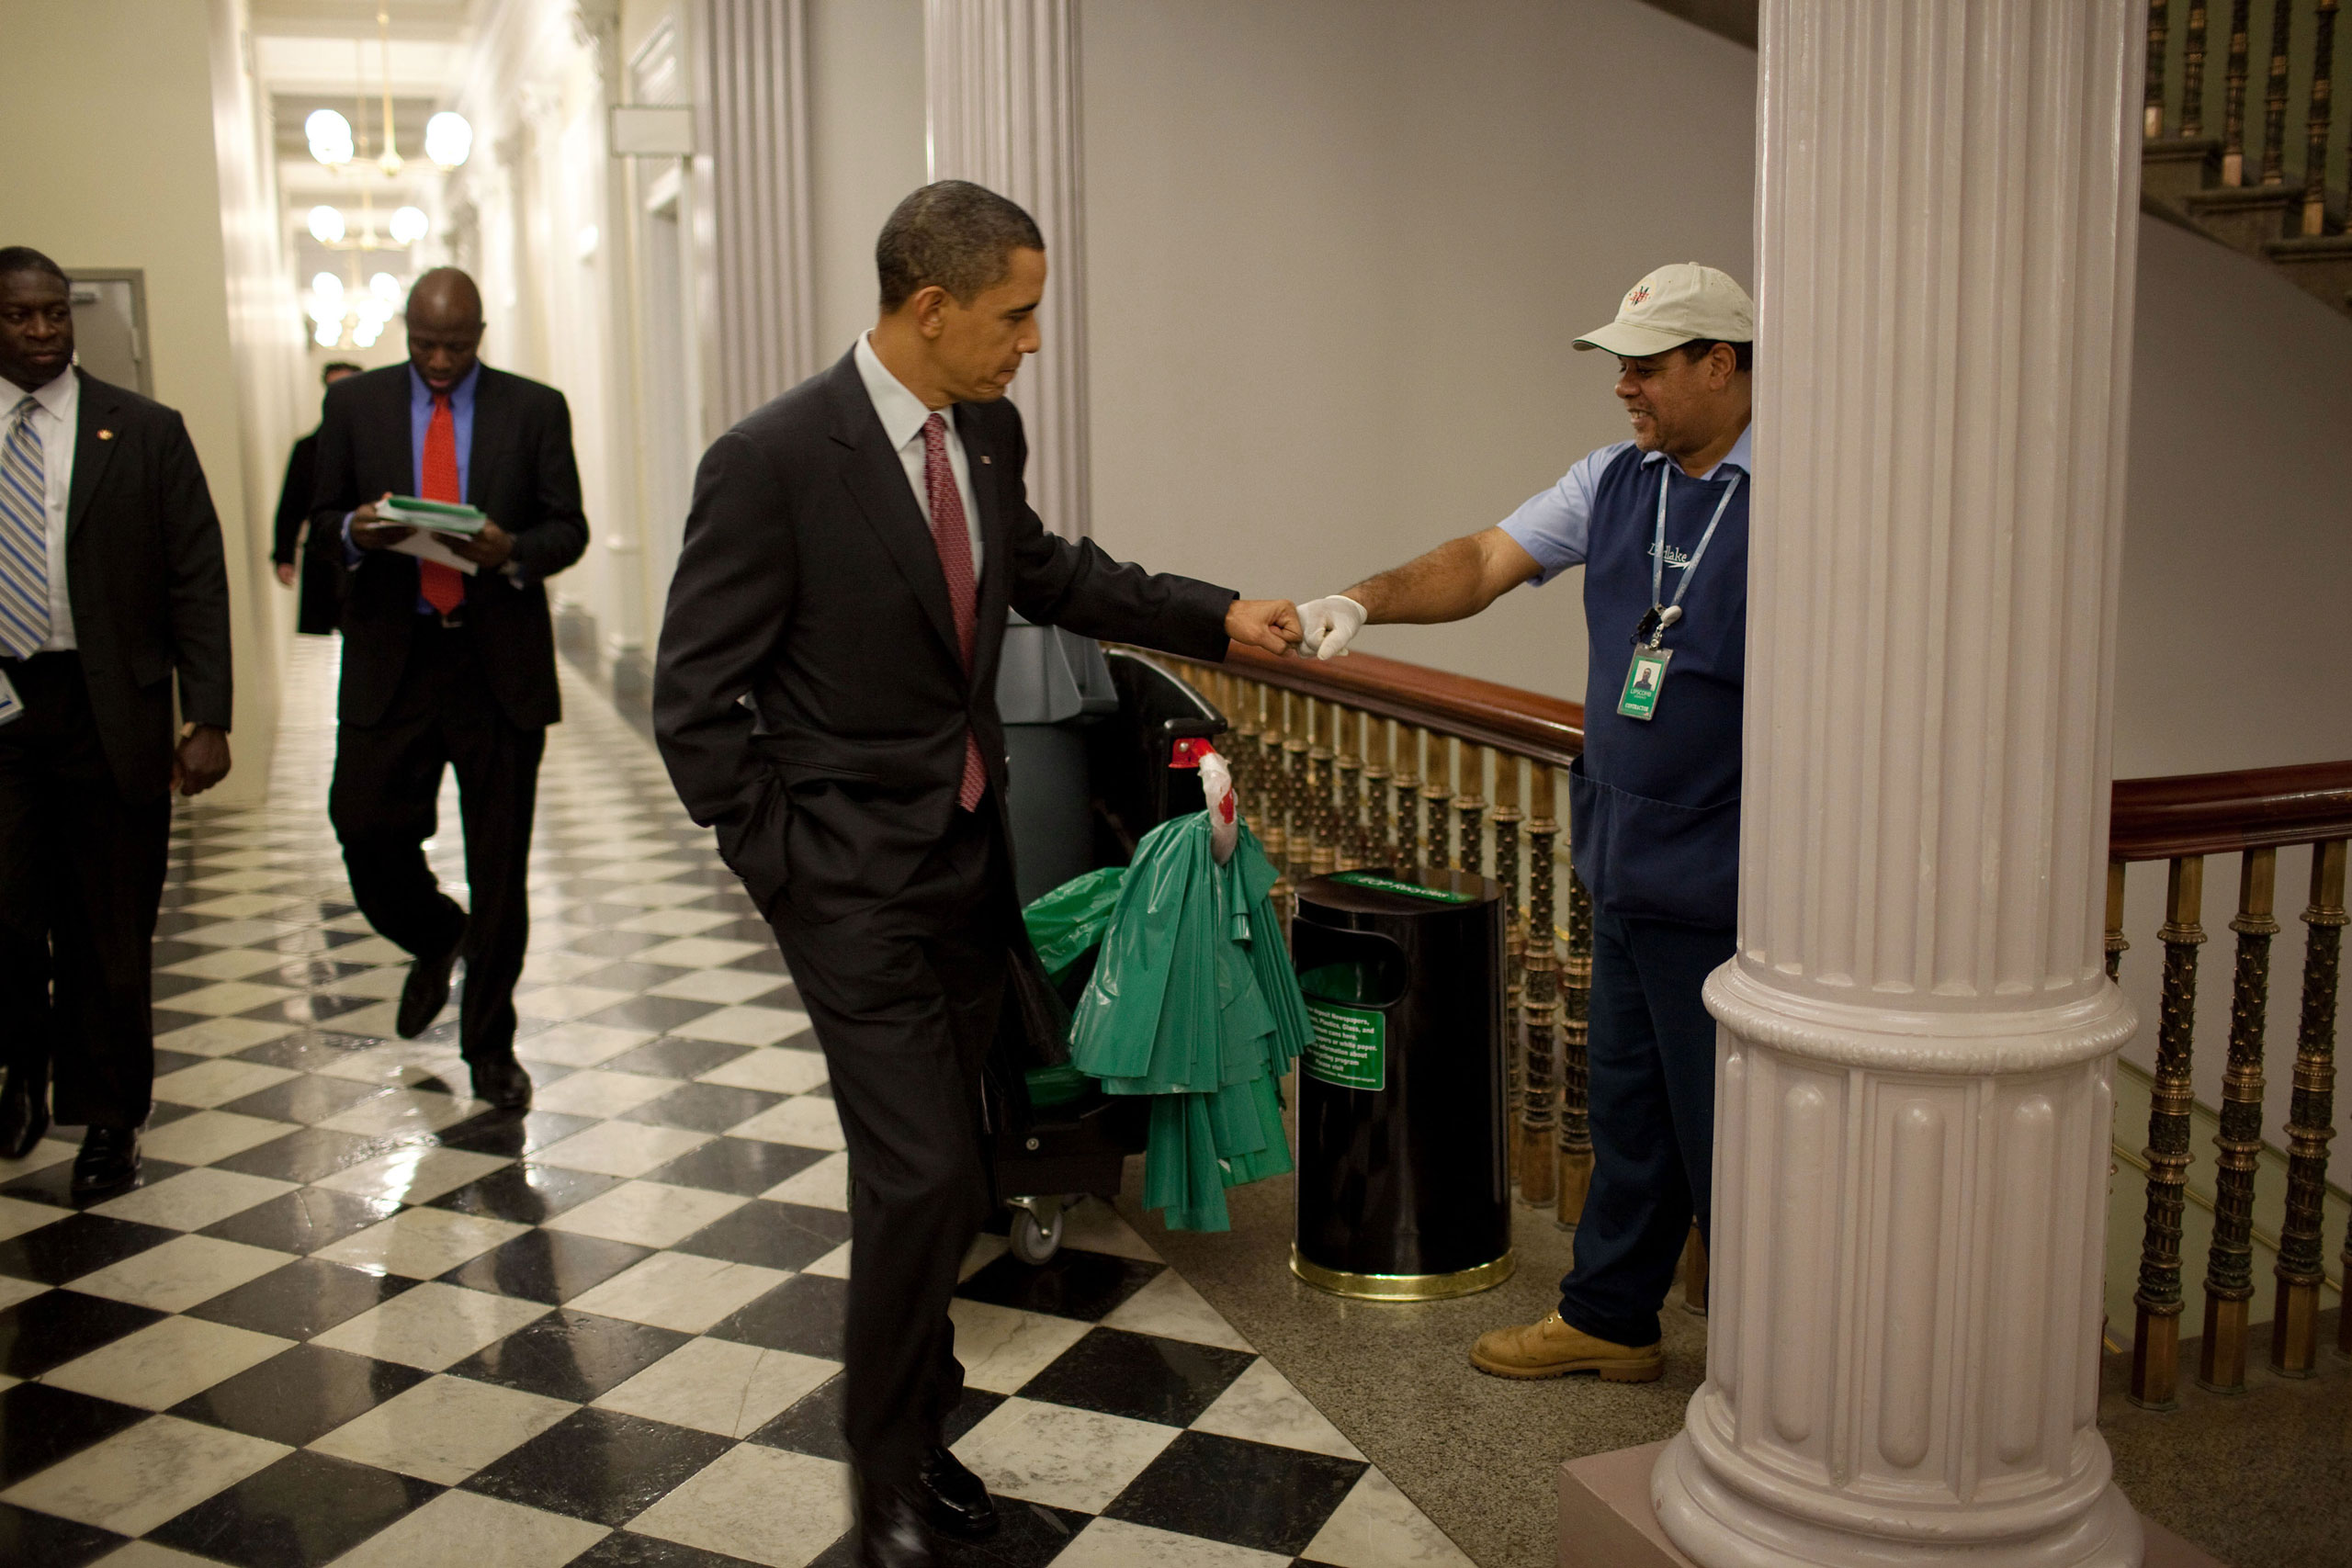 President Barack Obama fist-bumps custodian Lawrence Lipscomb in the Eisenhower Executive Office Building following the opening session of the White House Forum on Jobs and Economic Growth, Dec. 3, 2009.